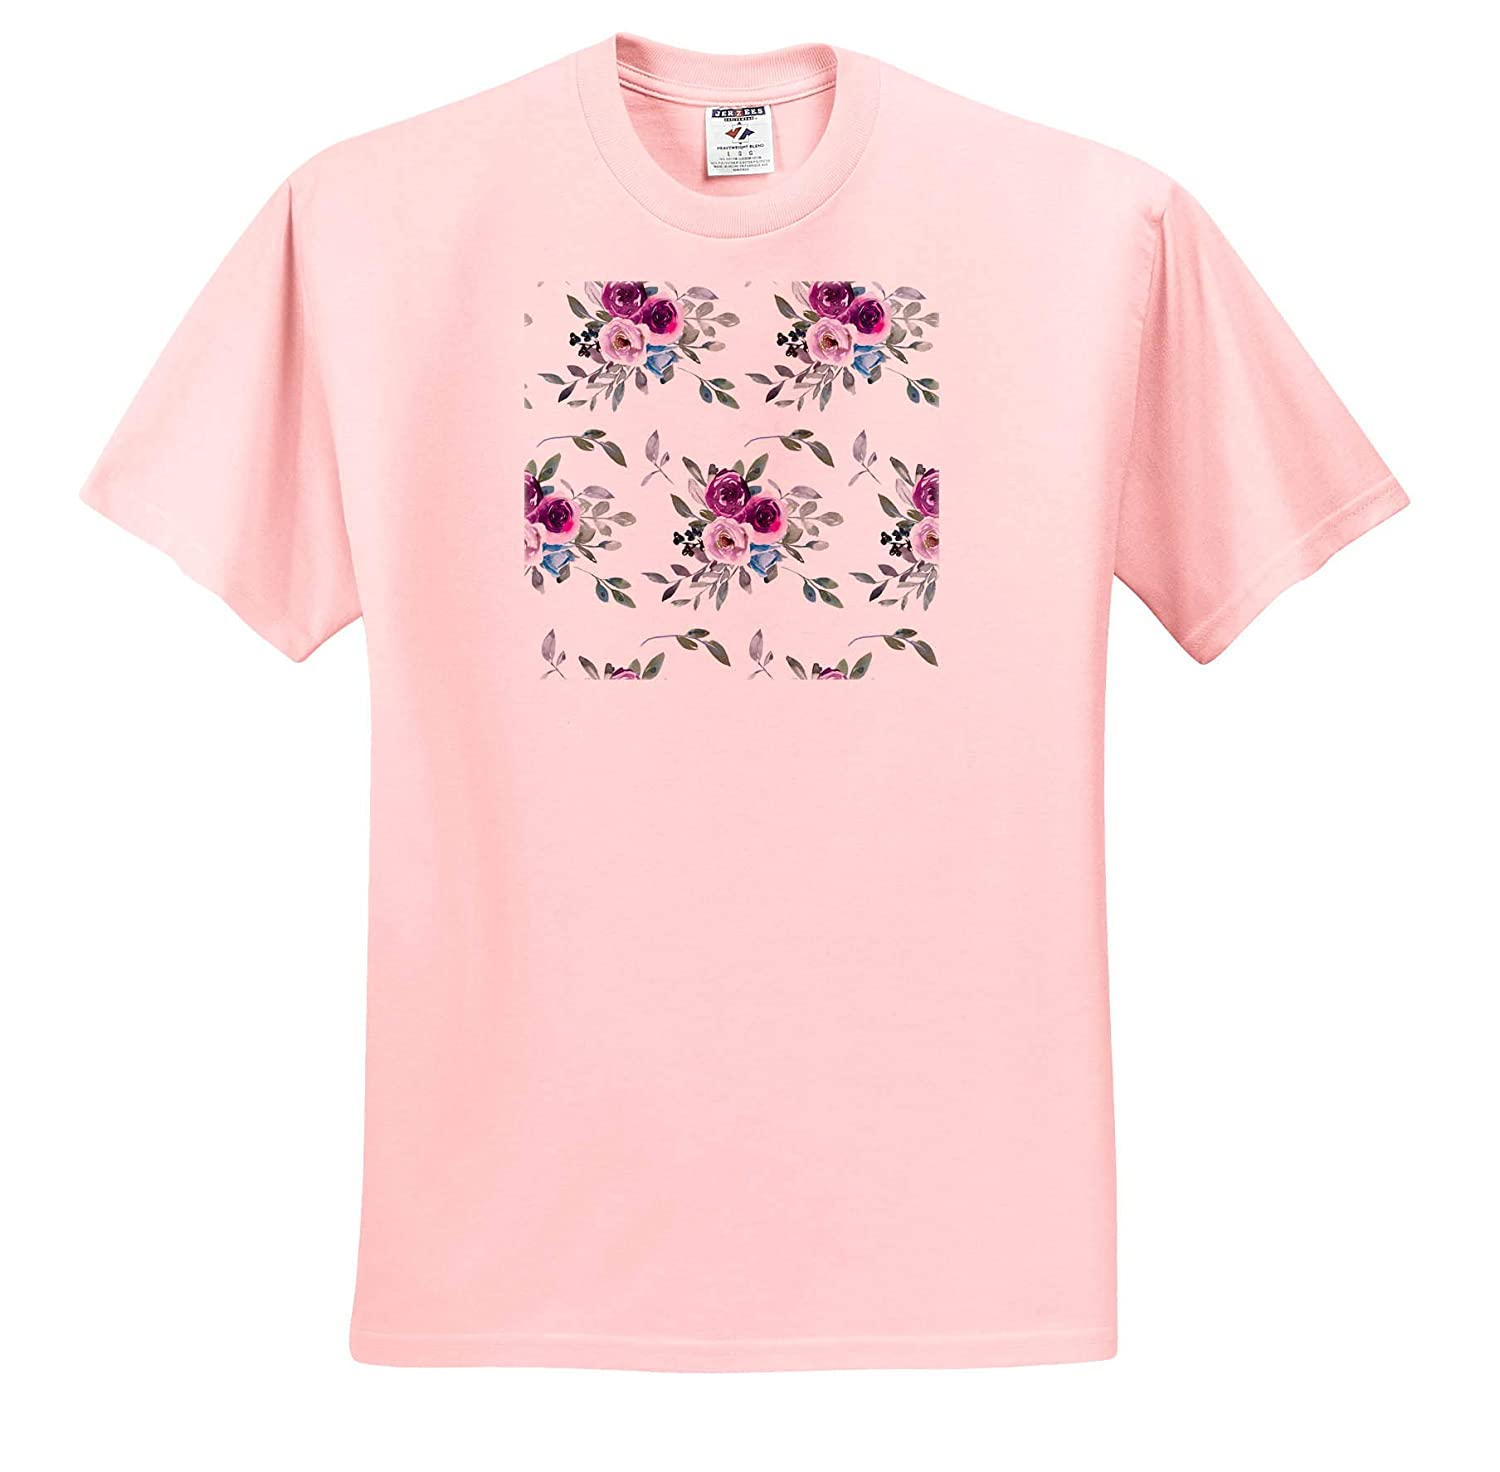 Adult T-Shirt XL 3dRose Anne Marie Baugh Patterns ts/_316235 Pretty Purple Image of Watercolor Floral Pattern